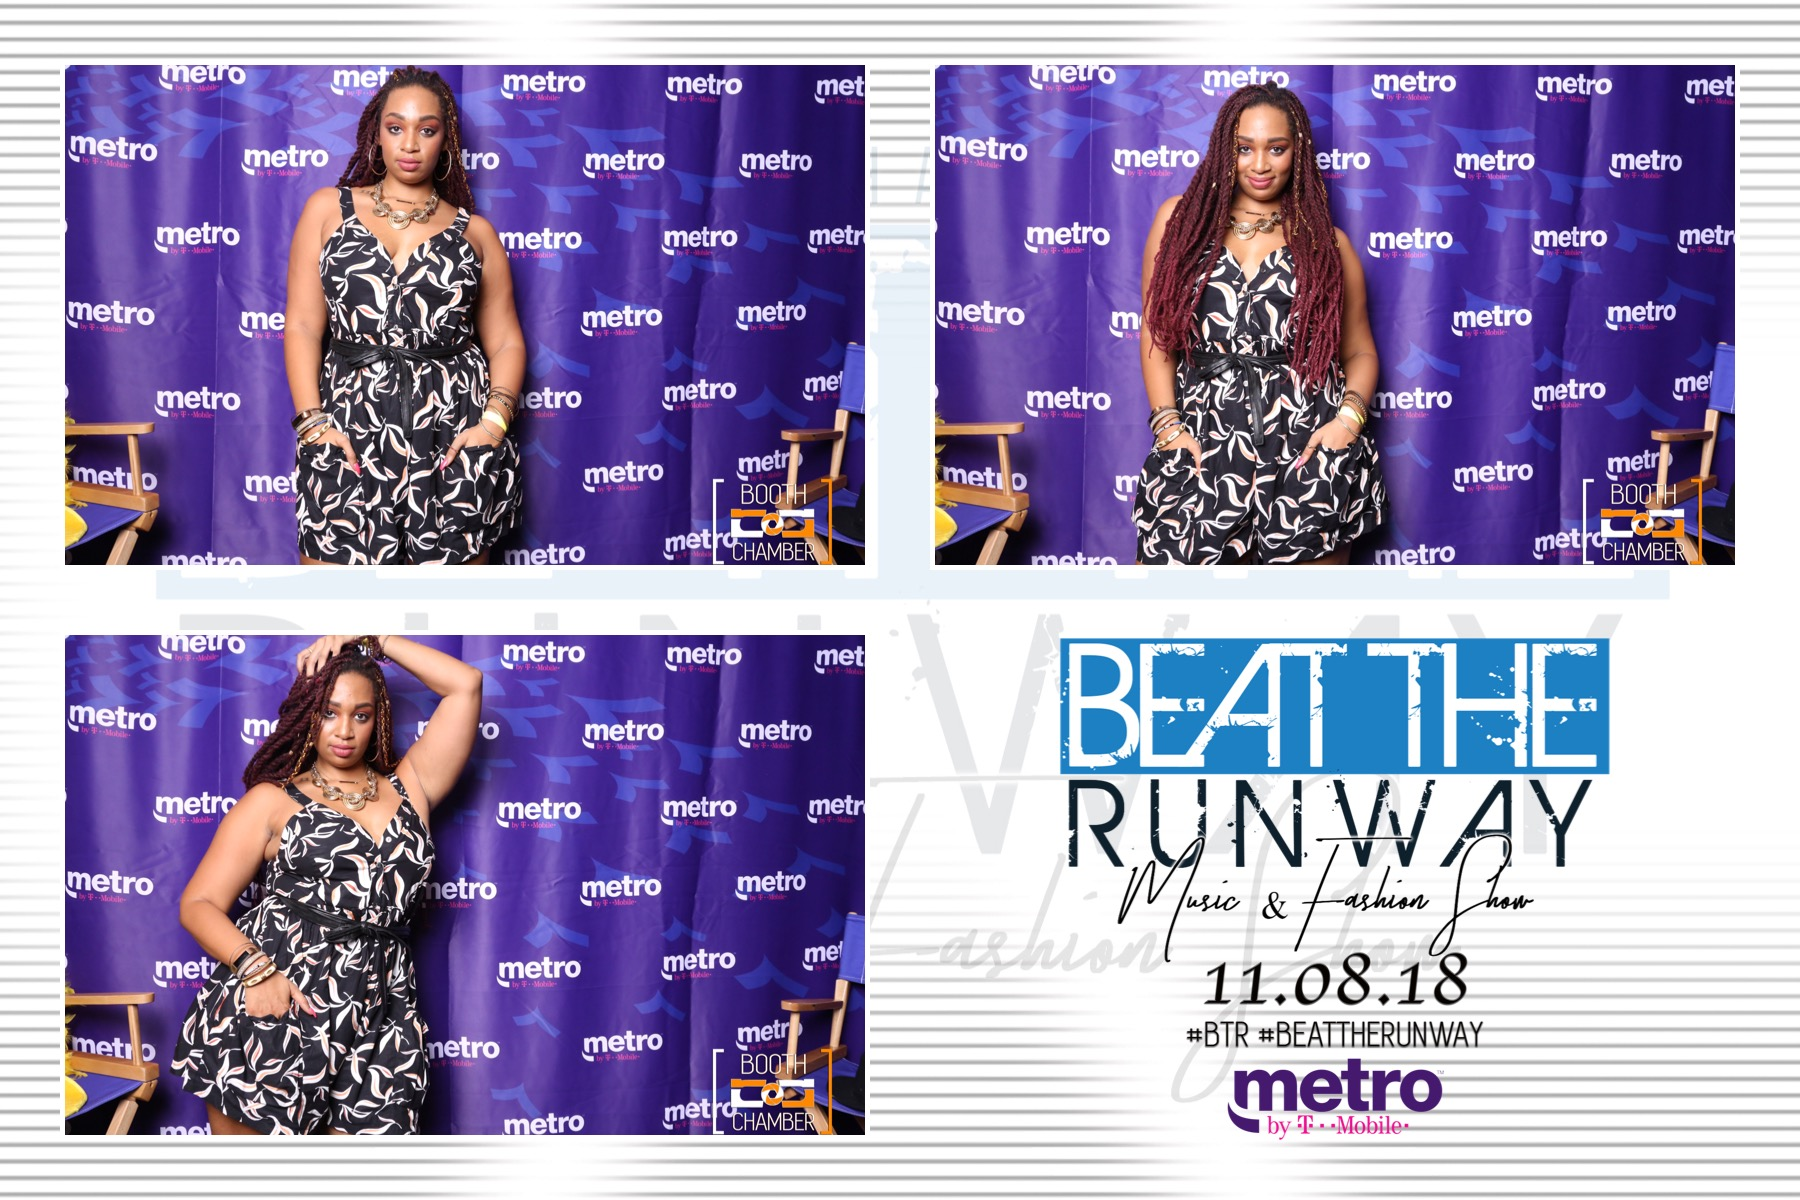 Booth Chamber Photo Booth Beat the Runway Antoine Hart 20181108_7.jpeg